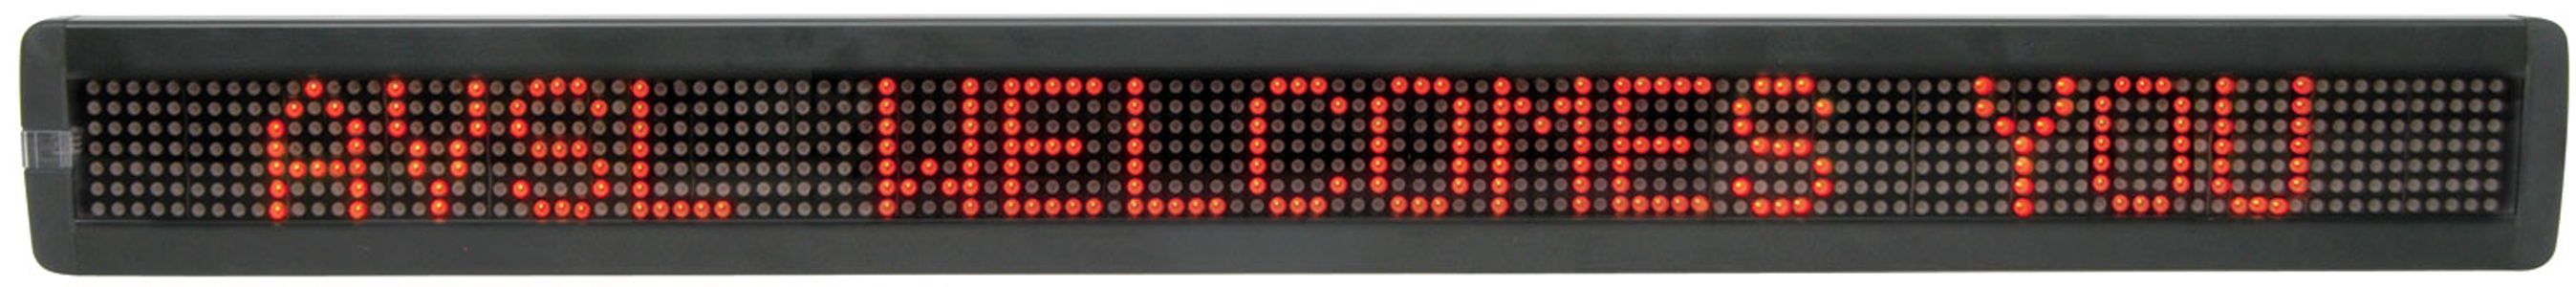 Moving Message Board with Red LEDs